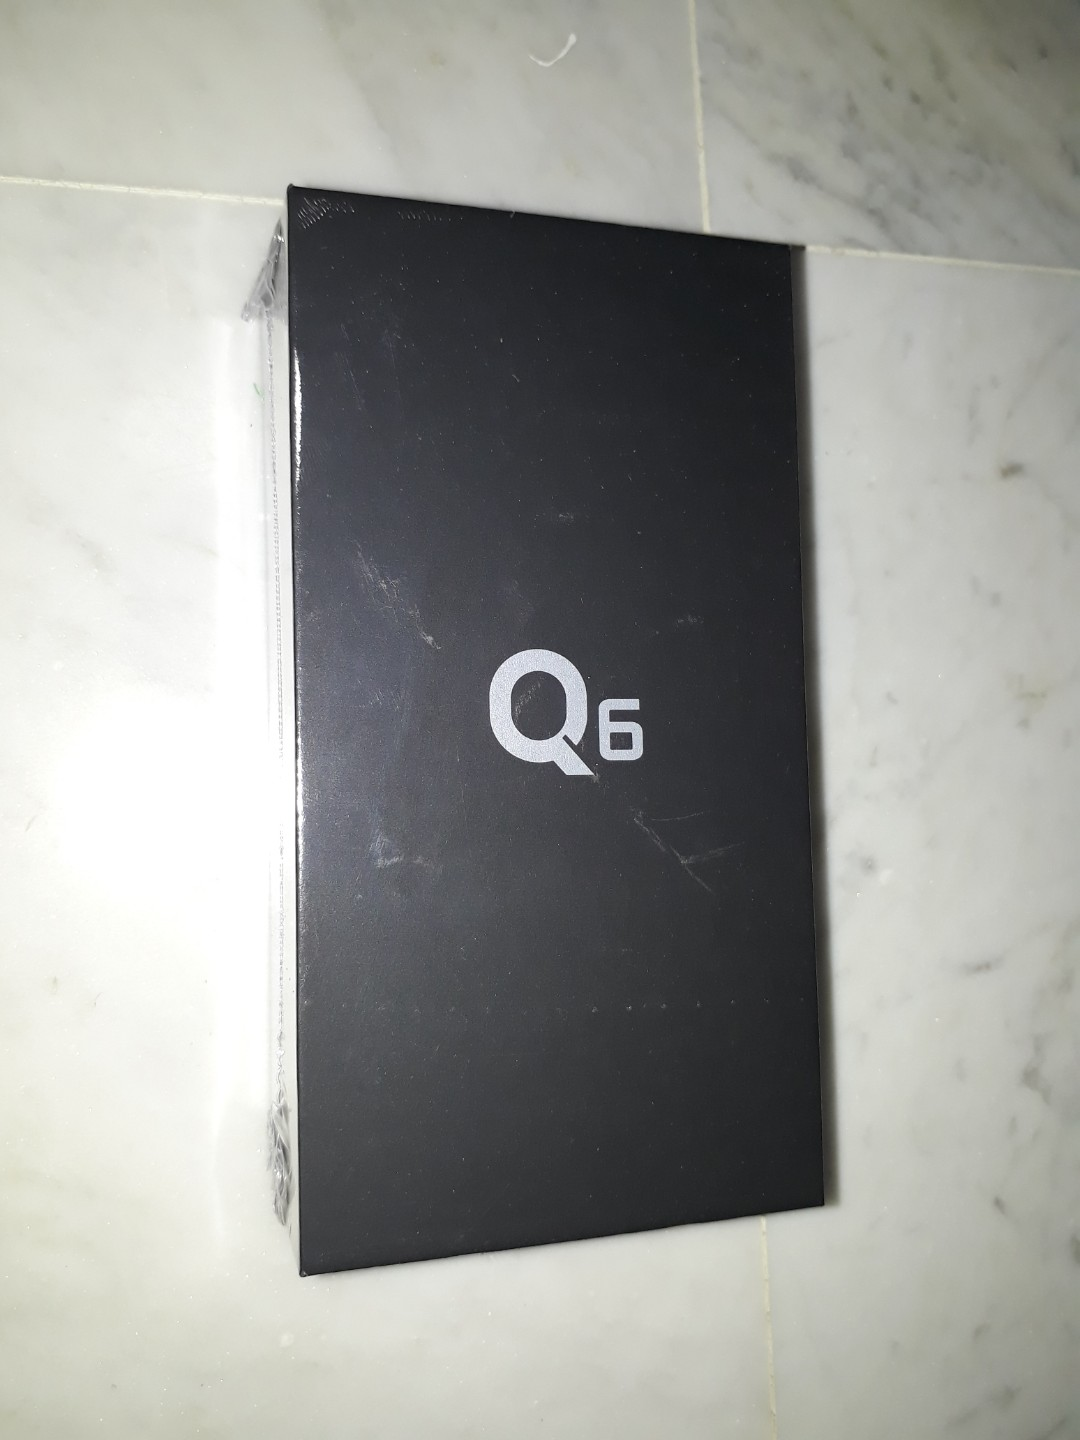 Lg Q6 Handphone Mobile Phones Tablets Android Phones Lg On